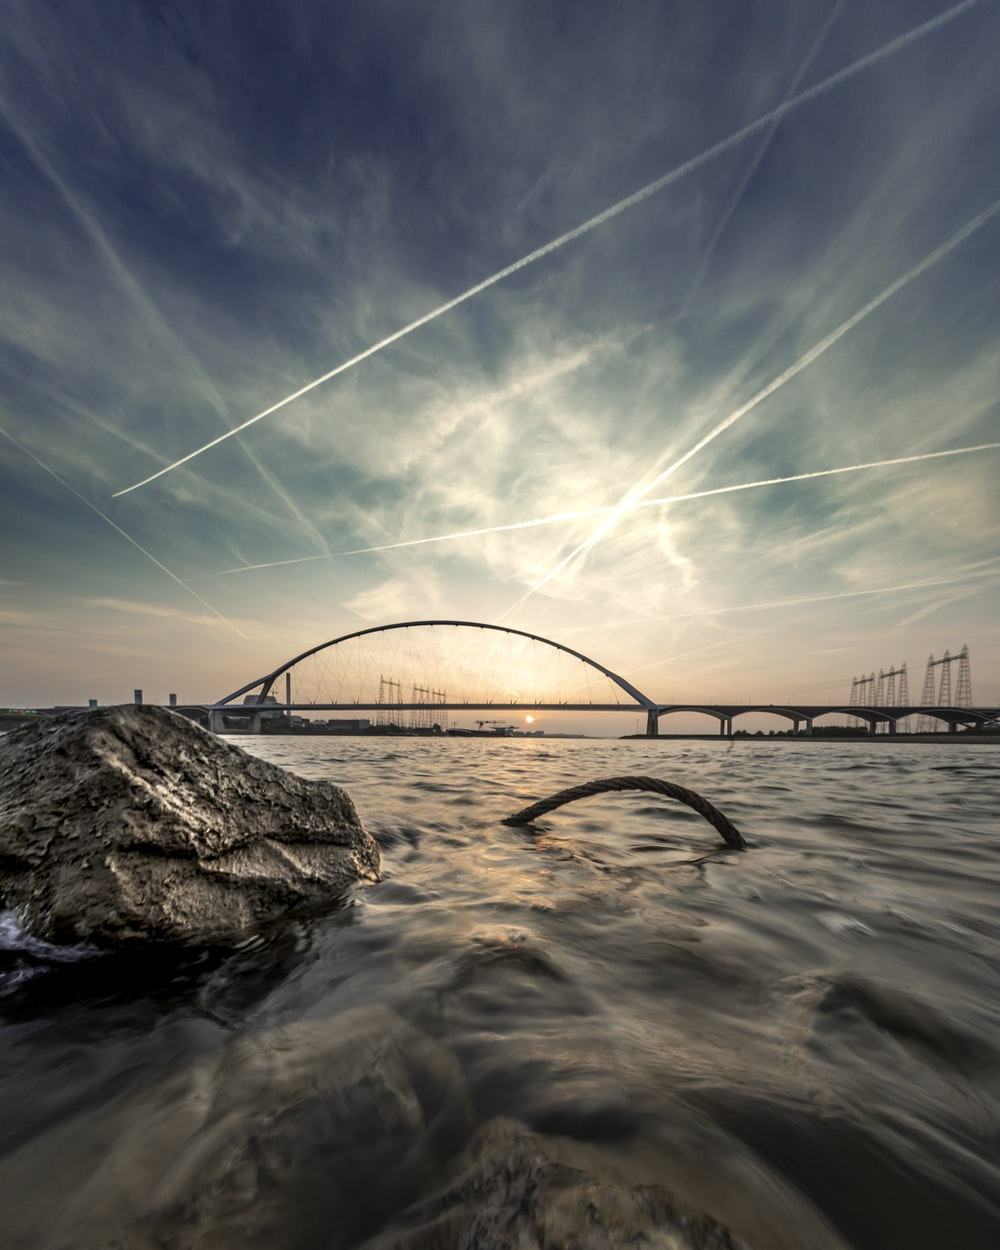 timelapse photography of rock and bridge